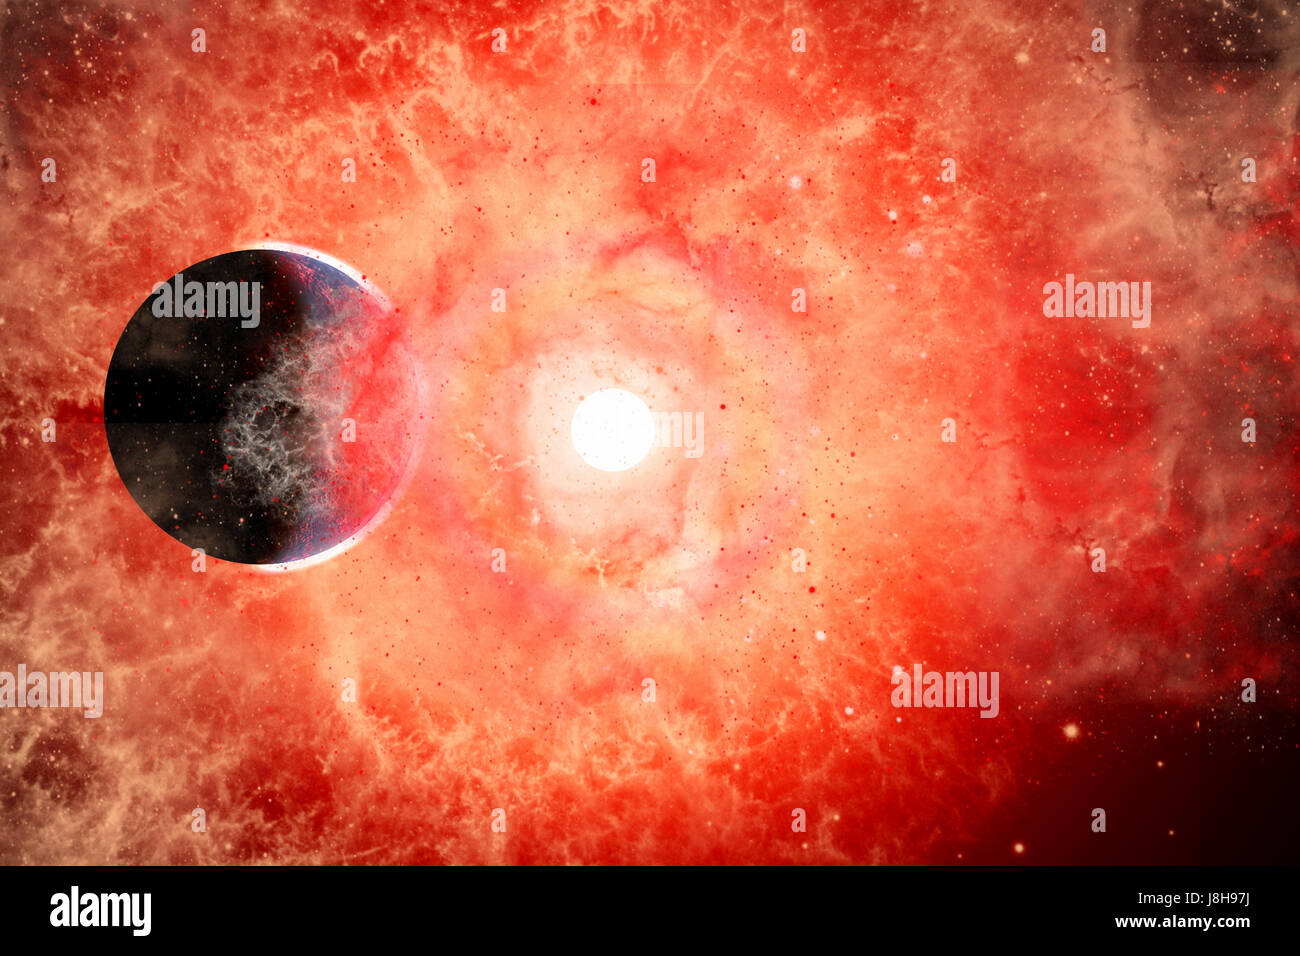 A Supernova Destroying Itself , & Its System Of Planets. - Stock Image